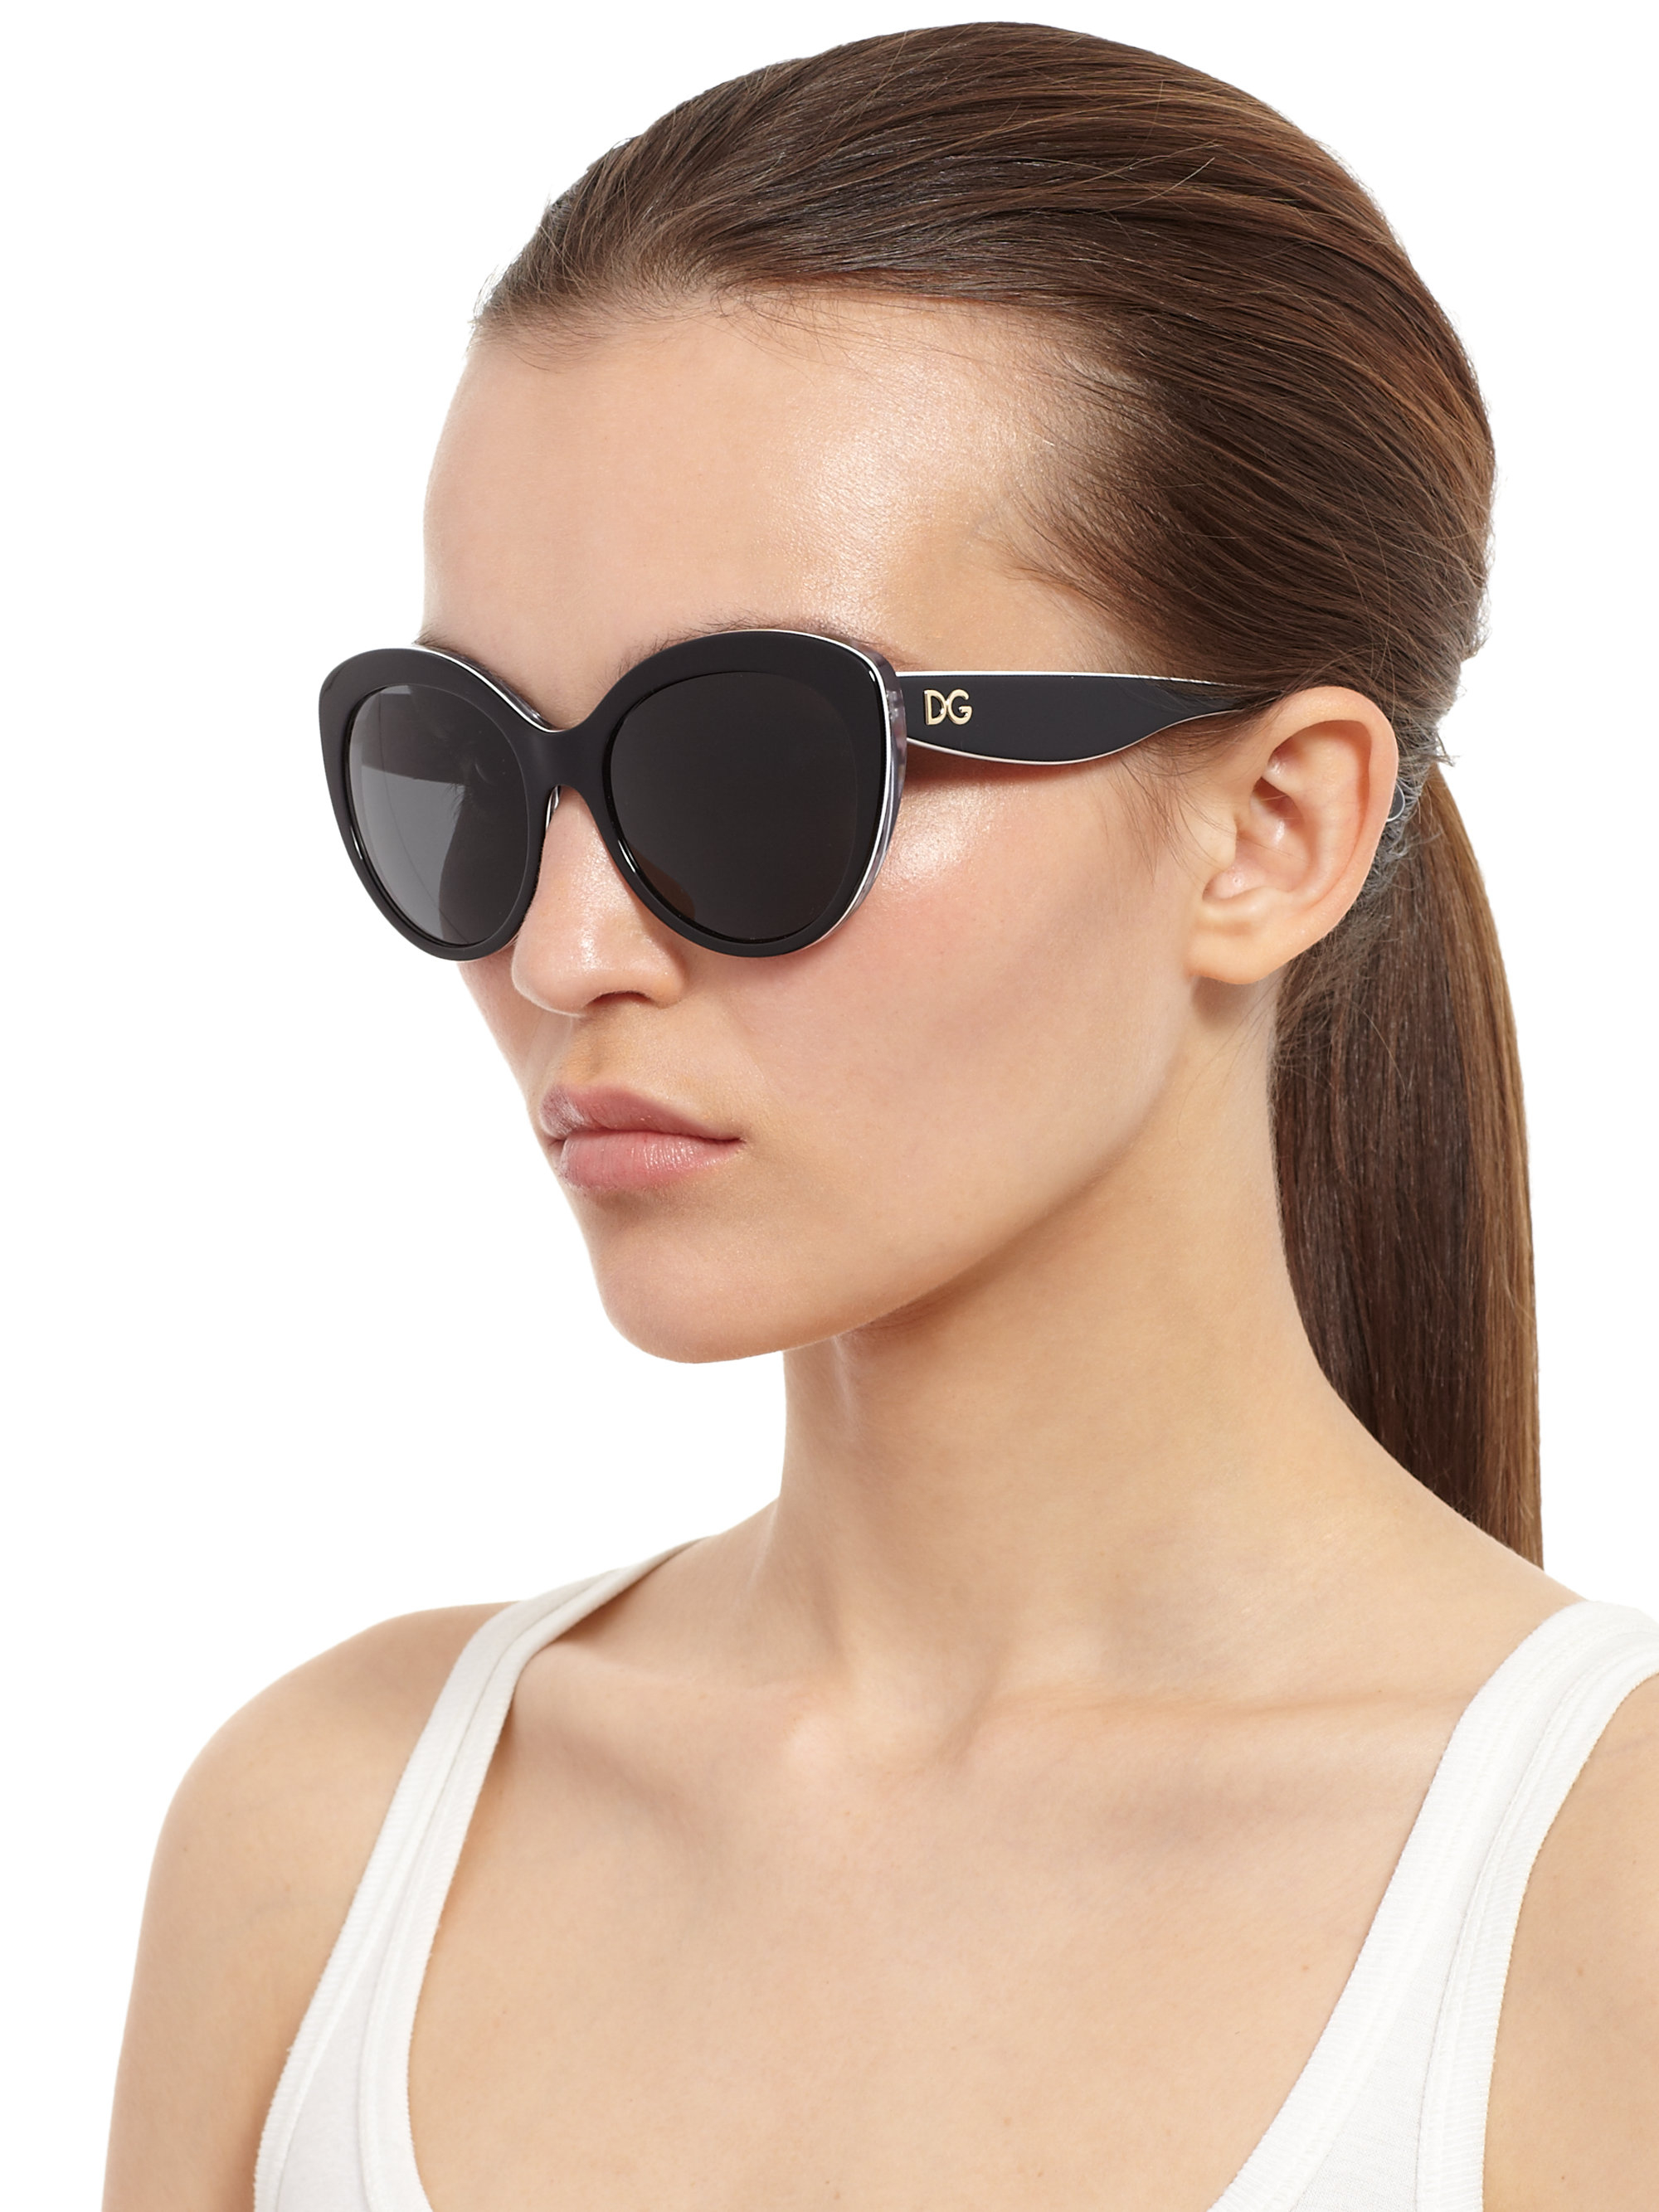 92940fae77 Gallery. Previously sold at: Saks Fifth Avenue · Women's Cat Eye Sunglasses